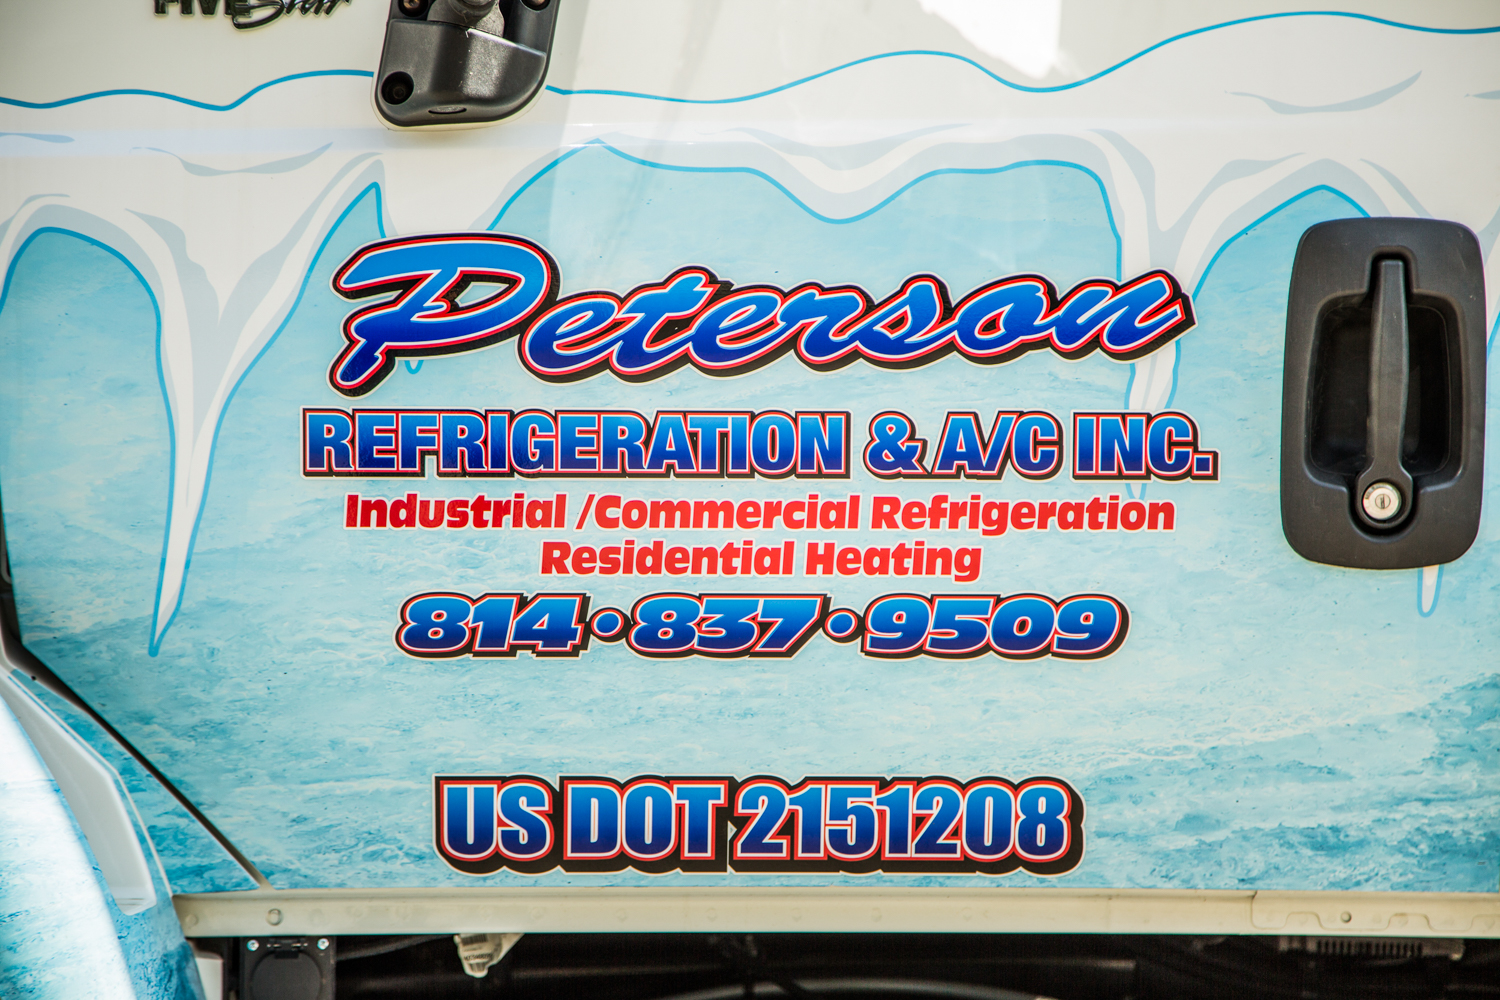 PetersonRefrigeration-3261.jpg